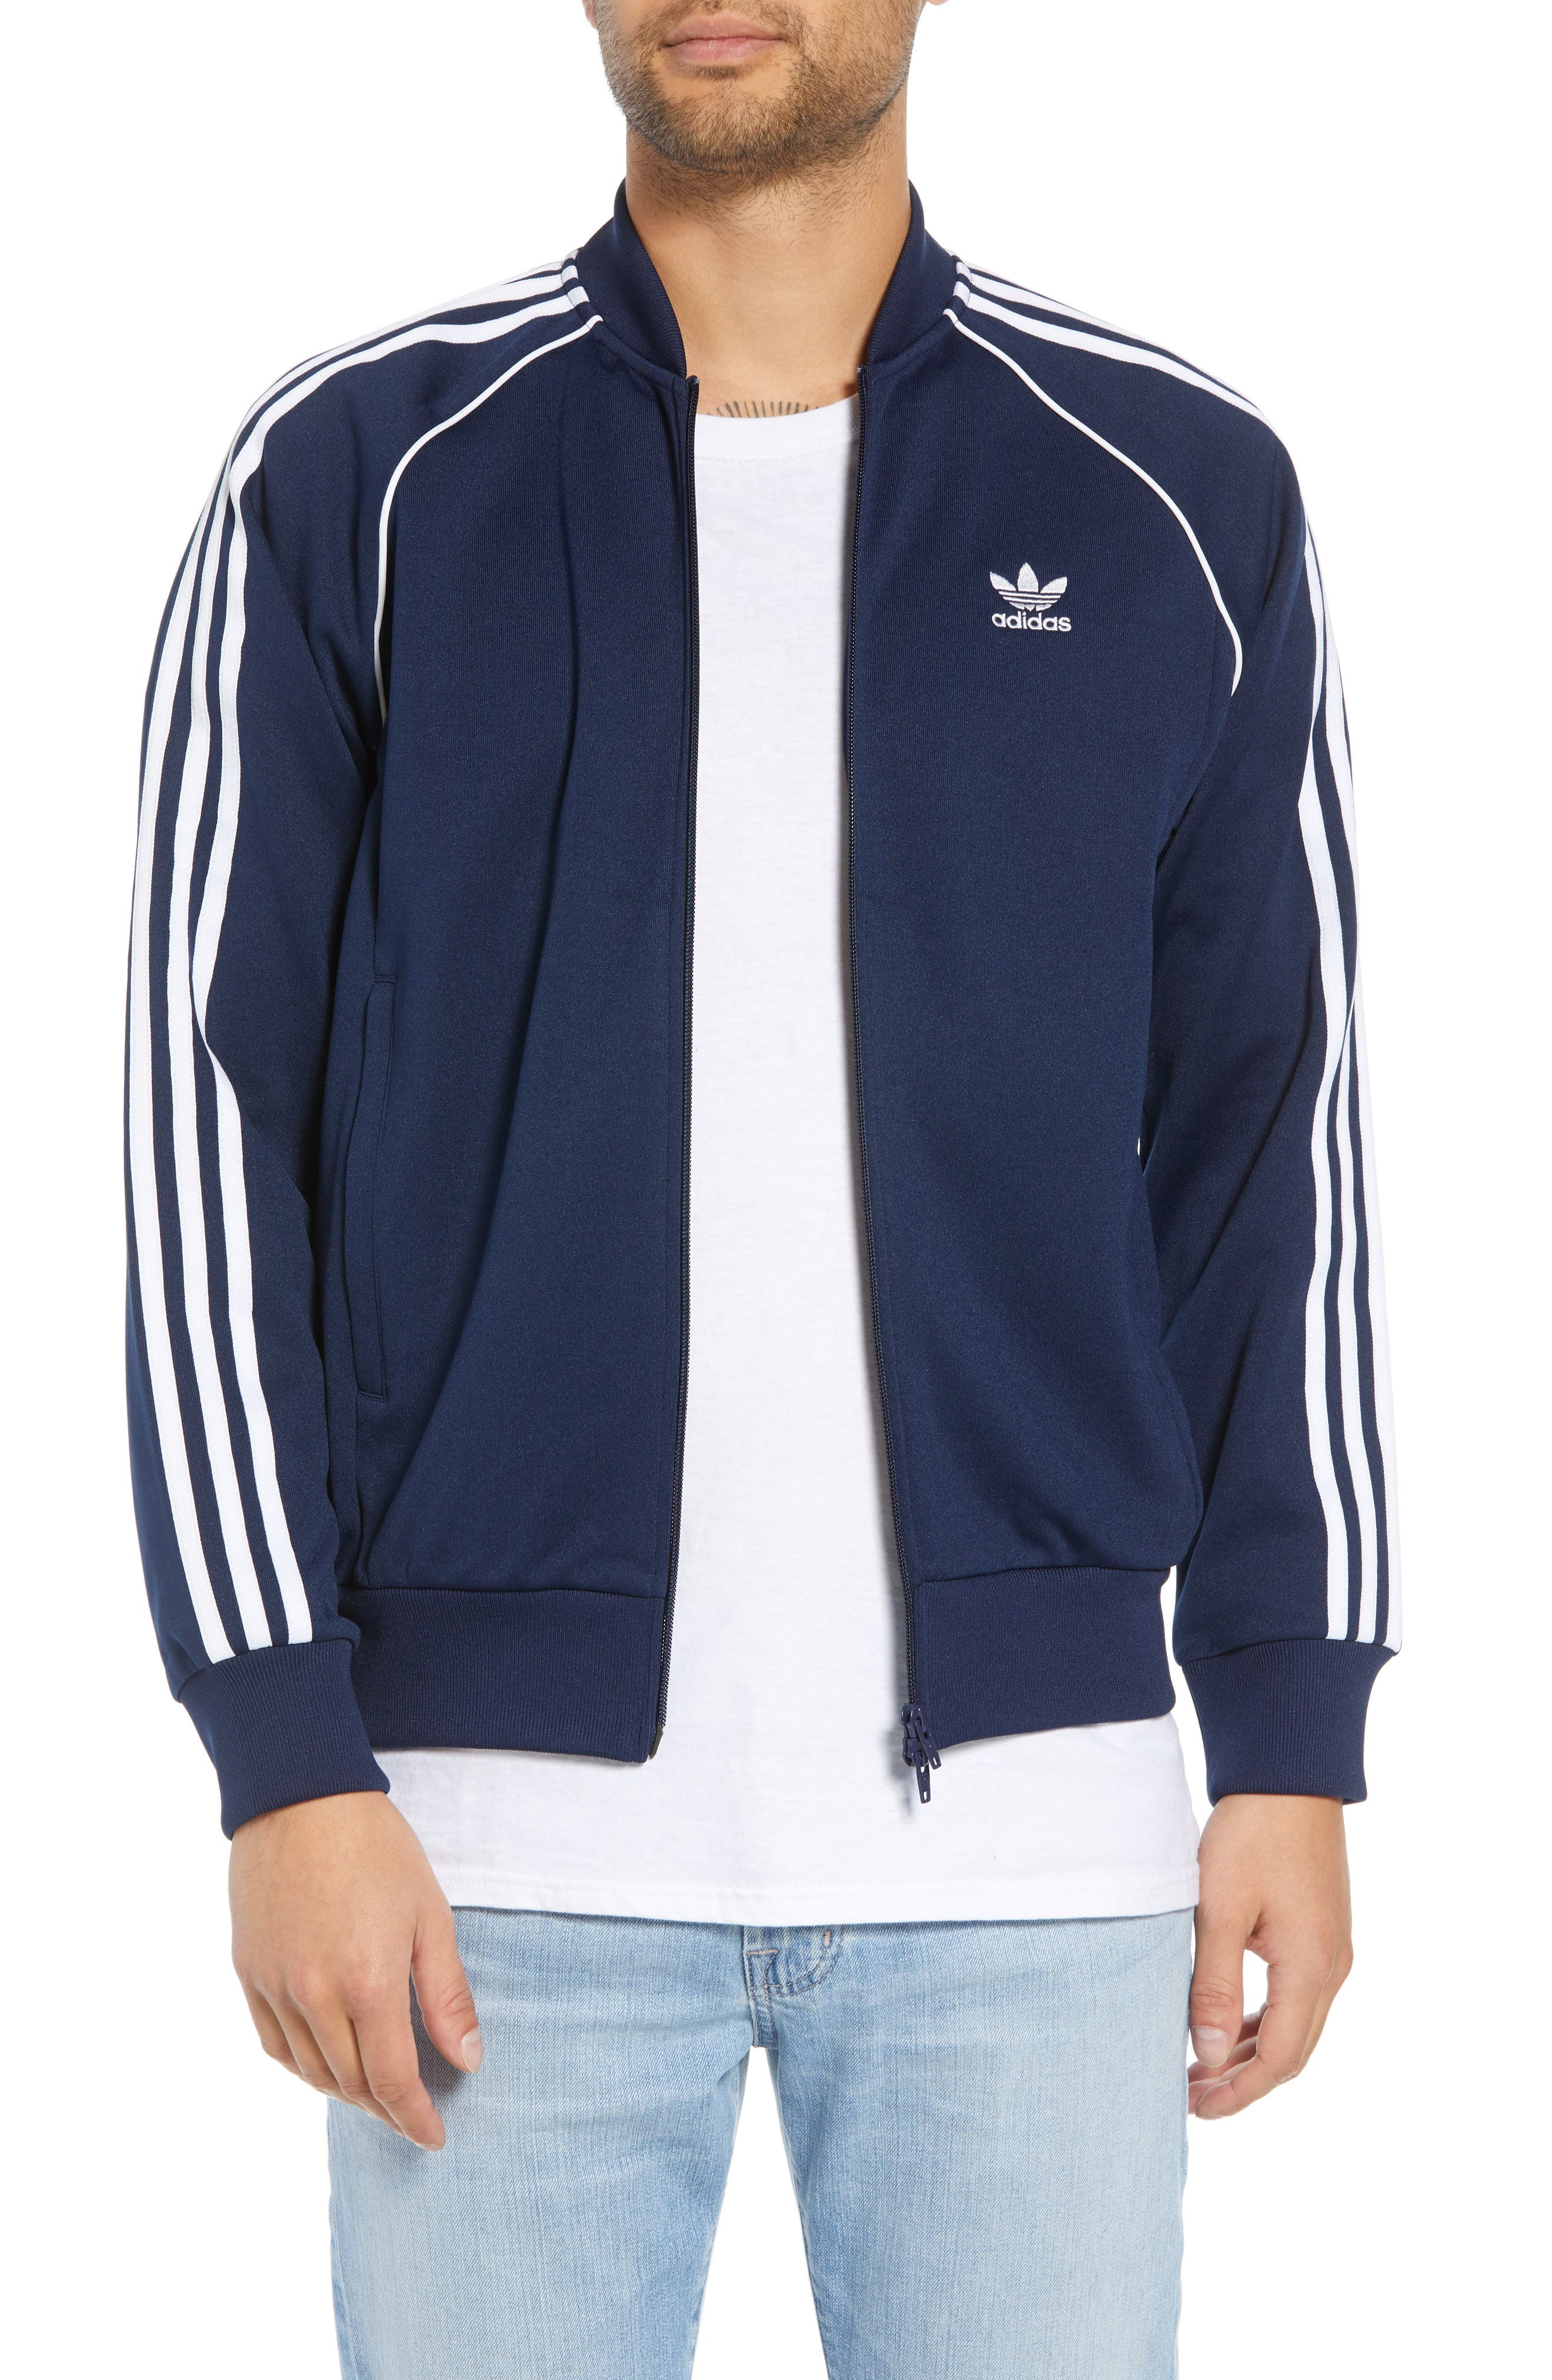 adidas SST Track Jacket,                             Main thumbnail 1, color,                             COLLEGIATE NAVY